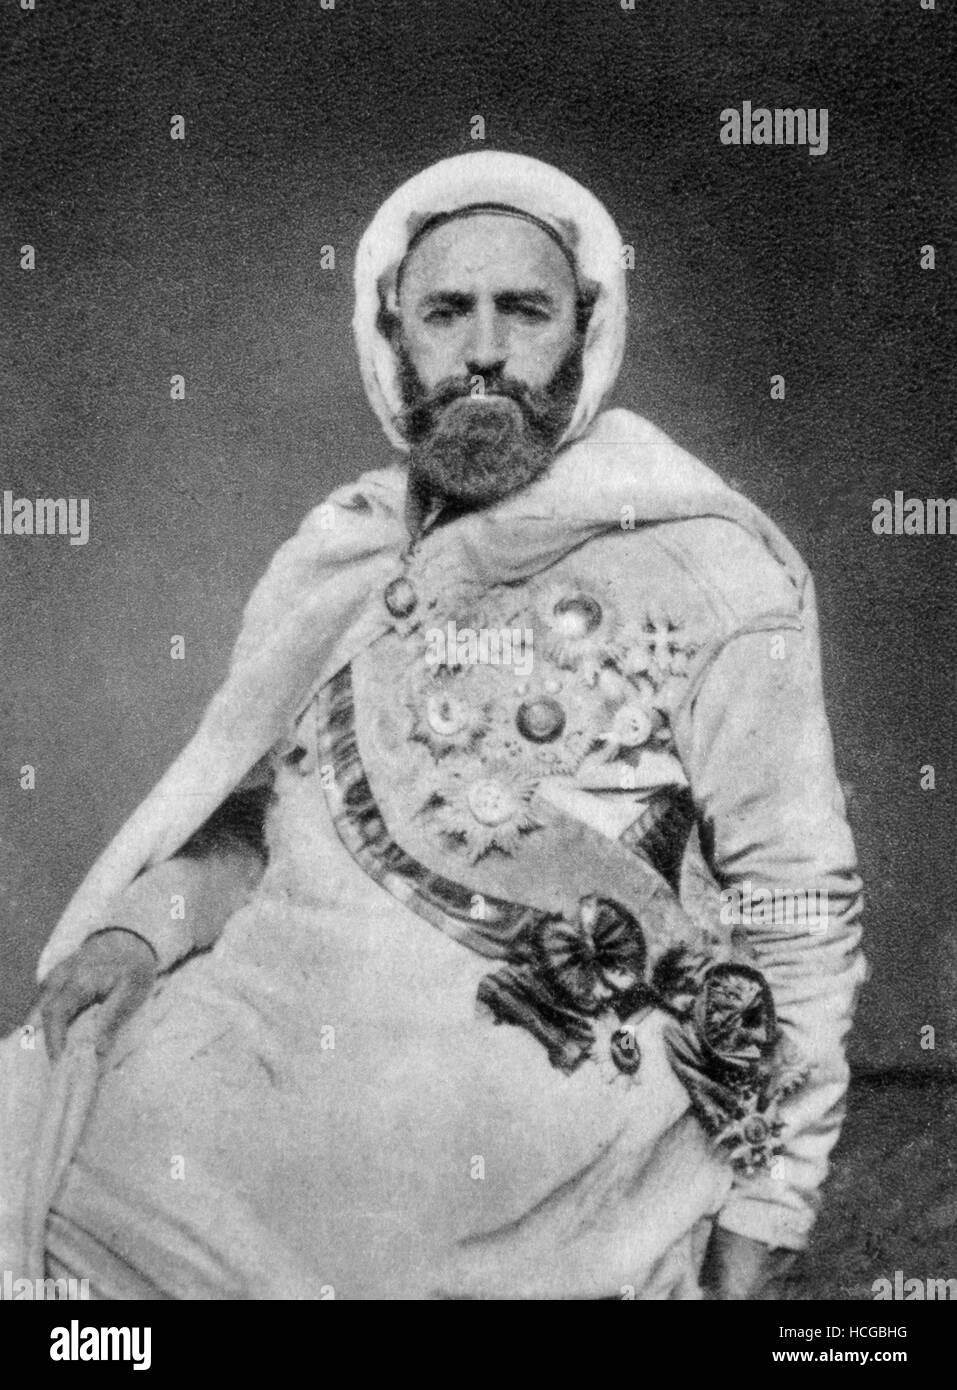 Portrait of Abd-el-Kader, Emir of Algeria - 1875 Stock Photo - Alamy